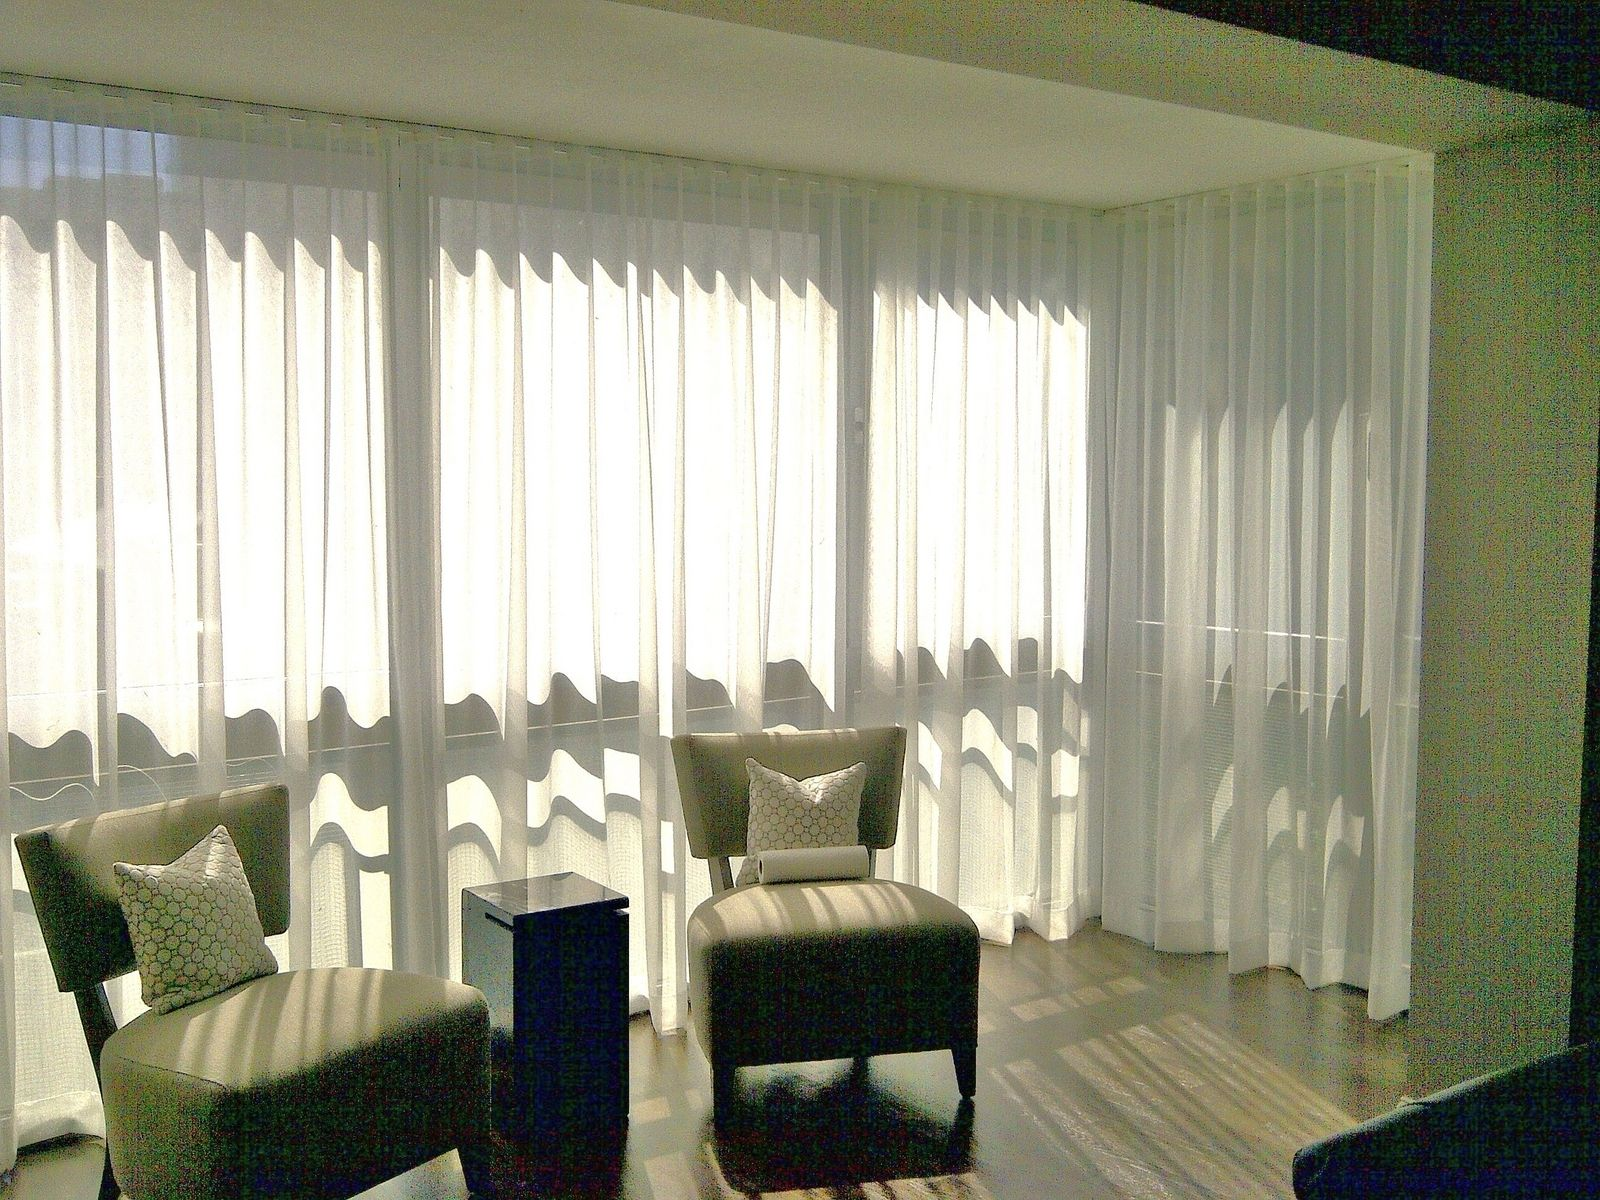 Handmade Ripple Fold Curtains by PLAZA HOME INTERIORS | CustomMade.com